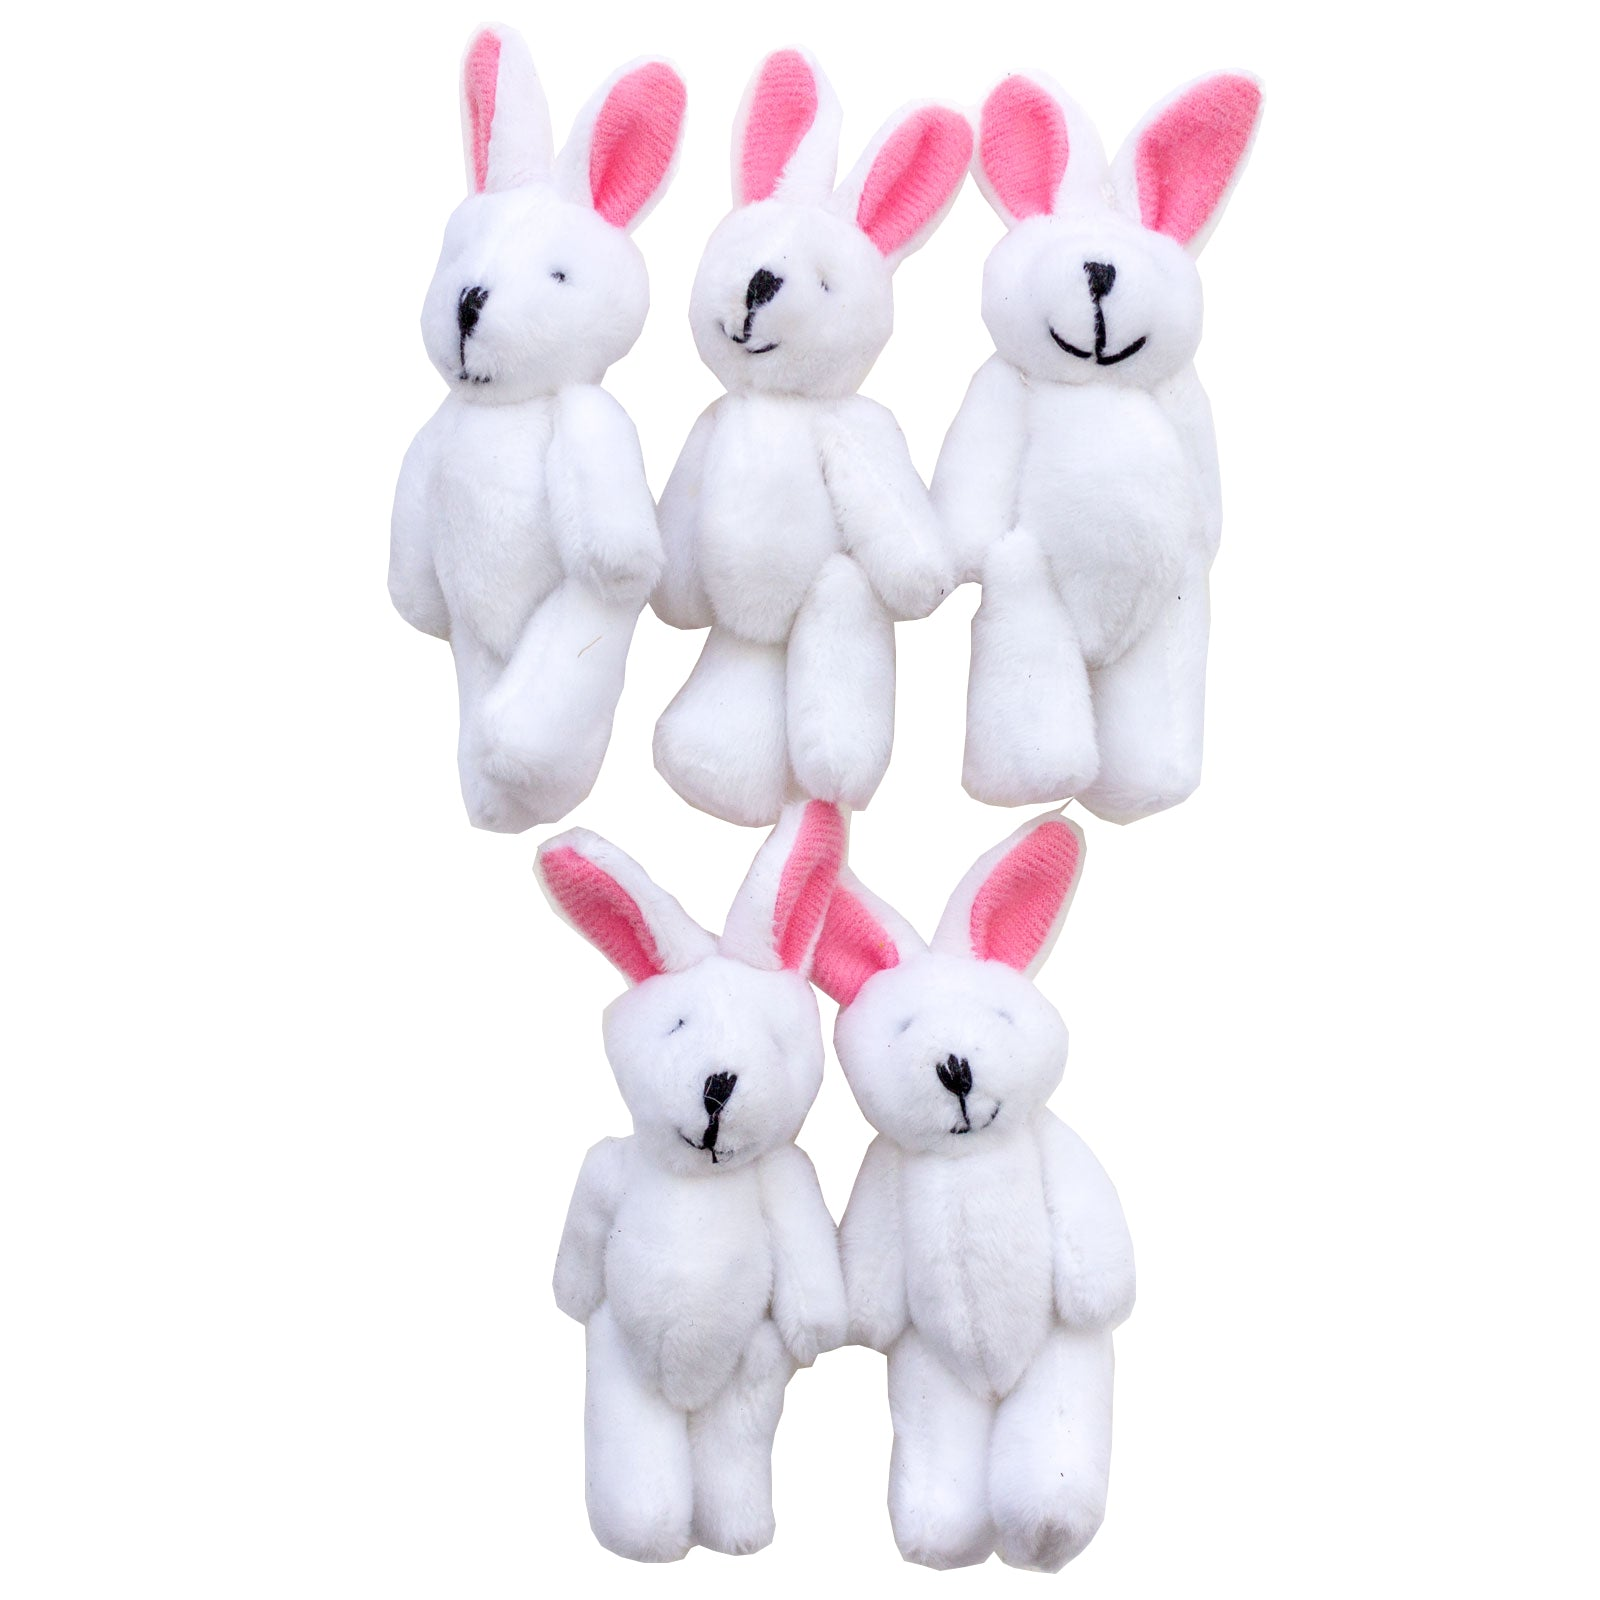 Small Rabbits X 60 - Cute Soft Adorable